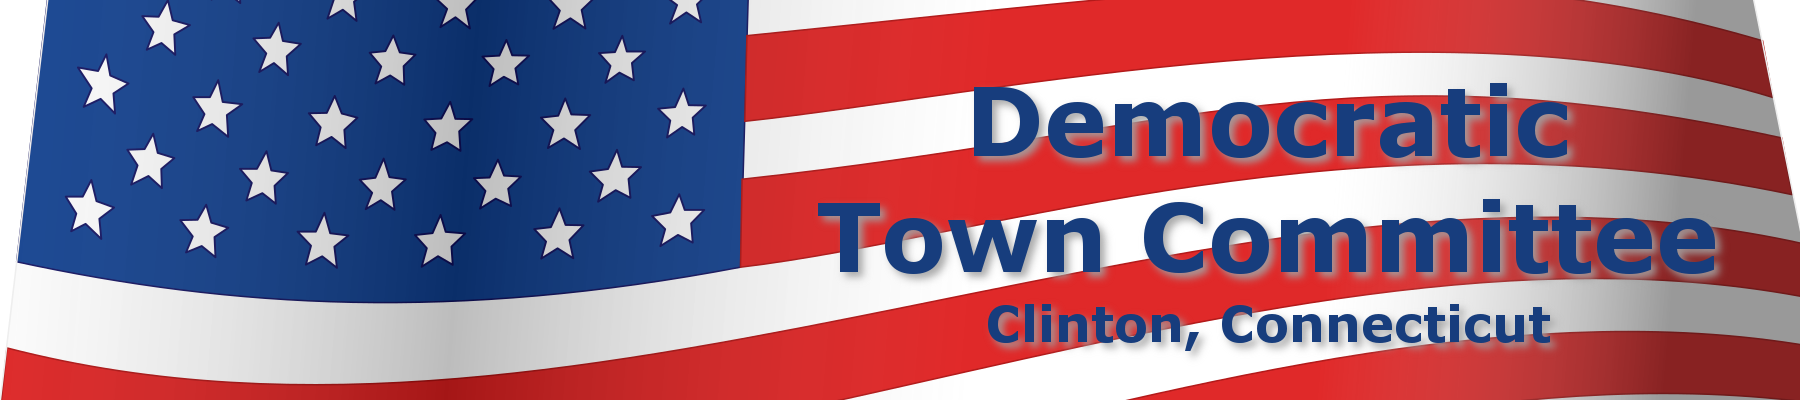 Clinton Democratic Town Committee